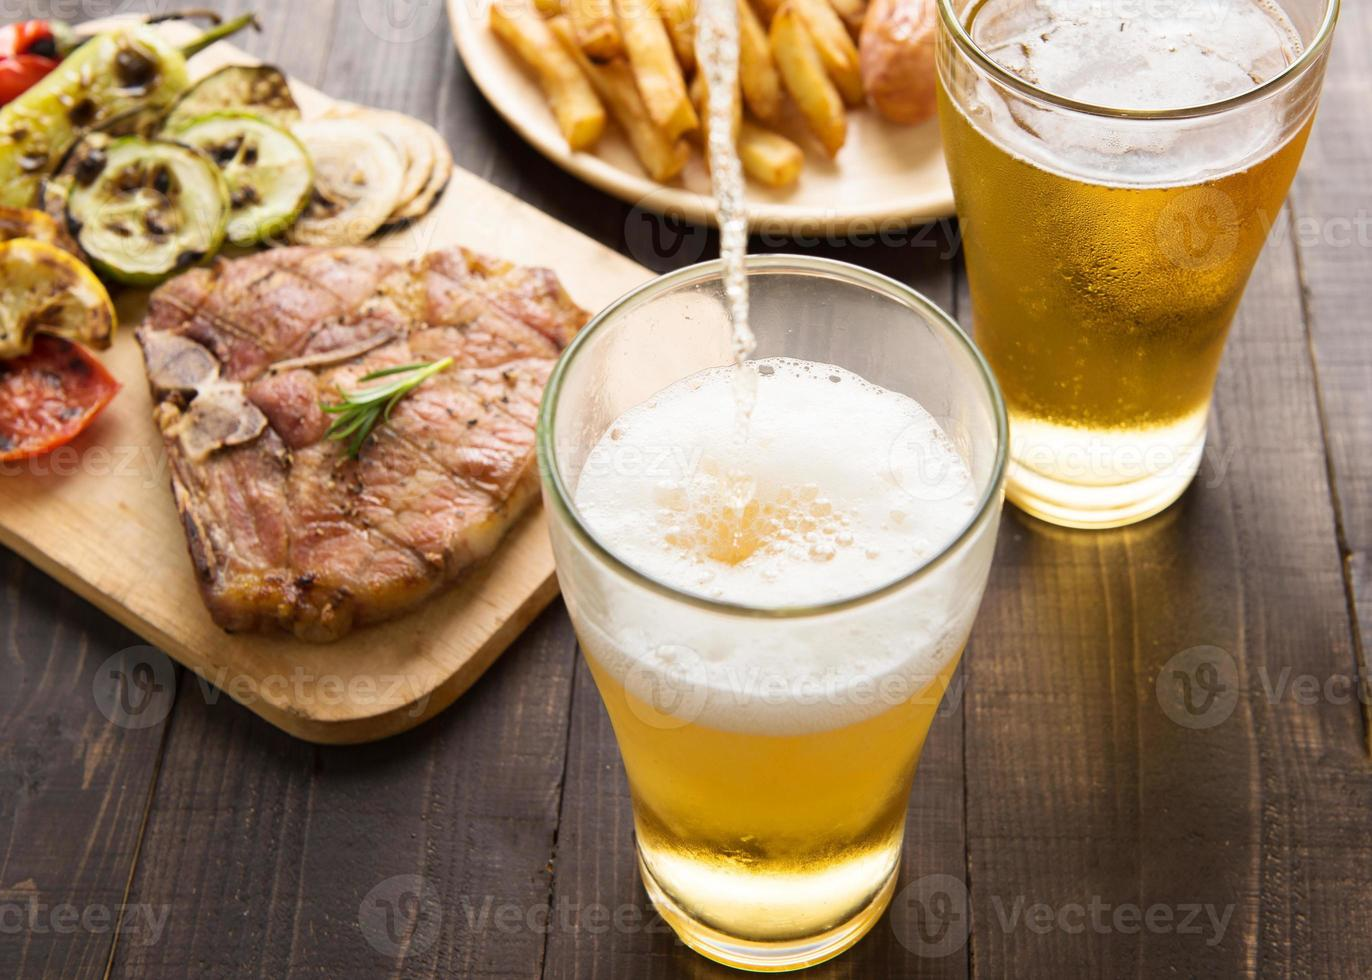 Beer being poured into glass with steak and french fries photo